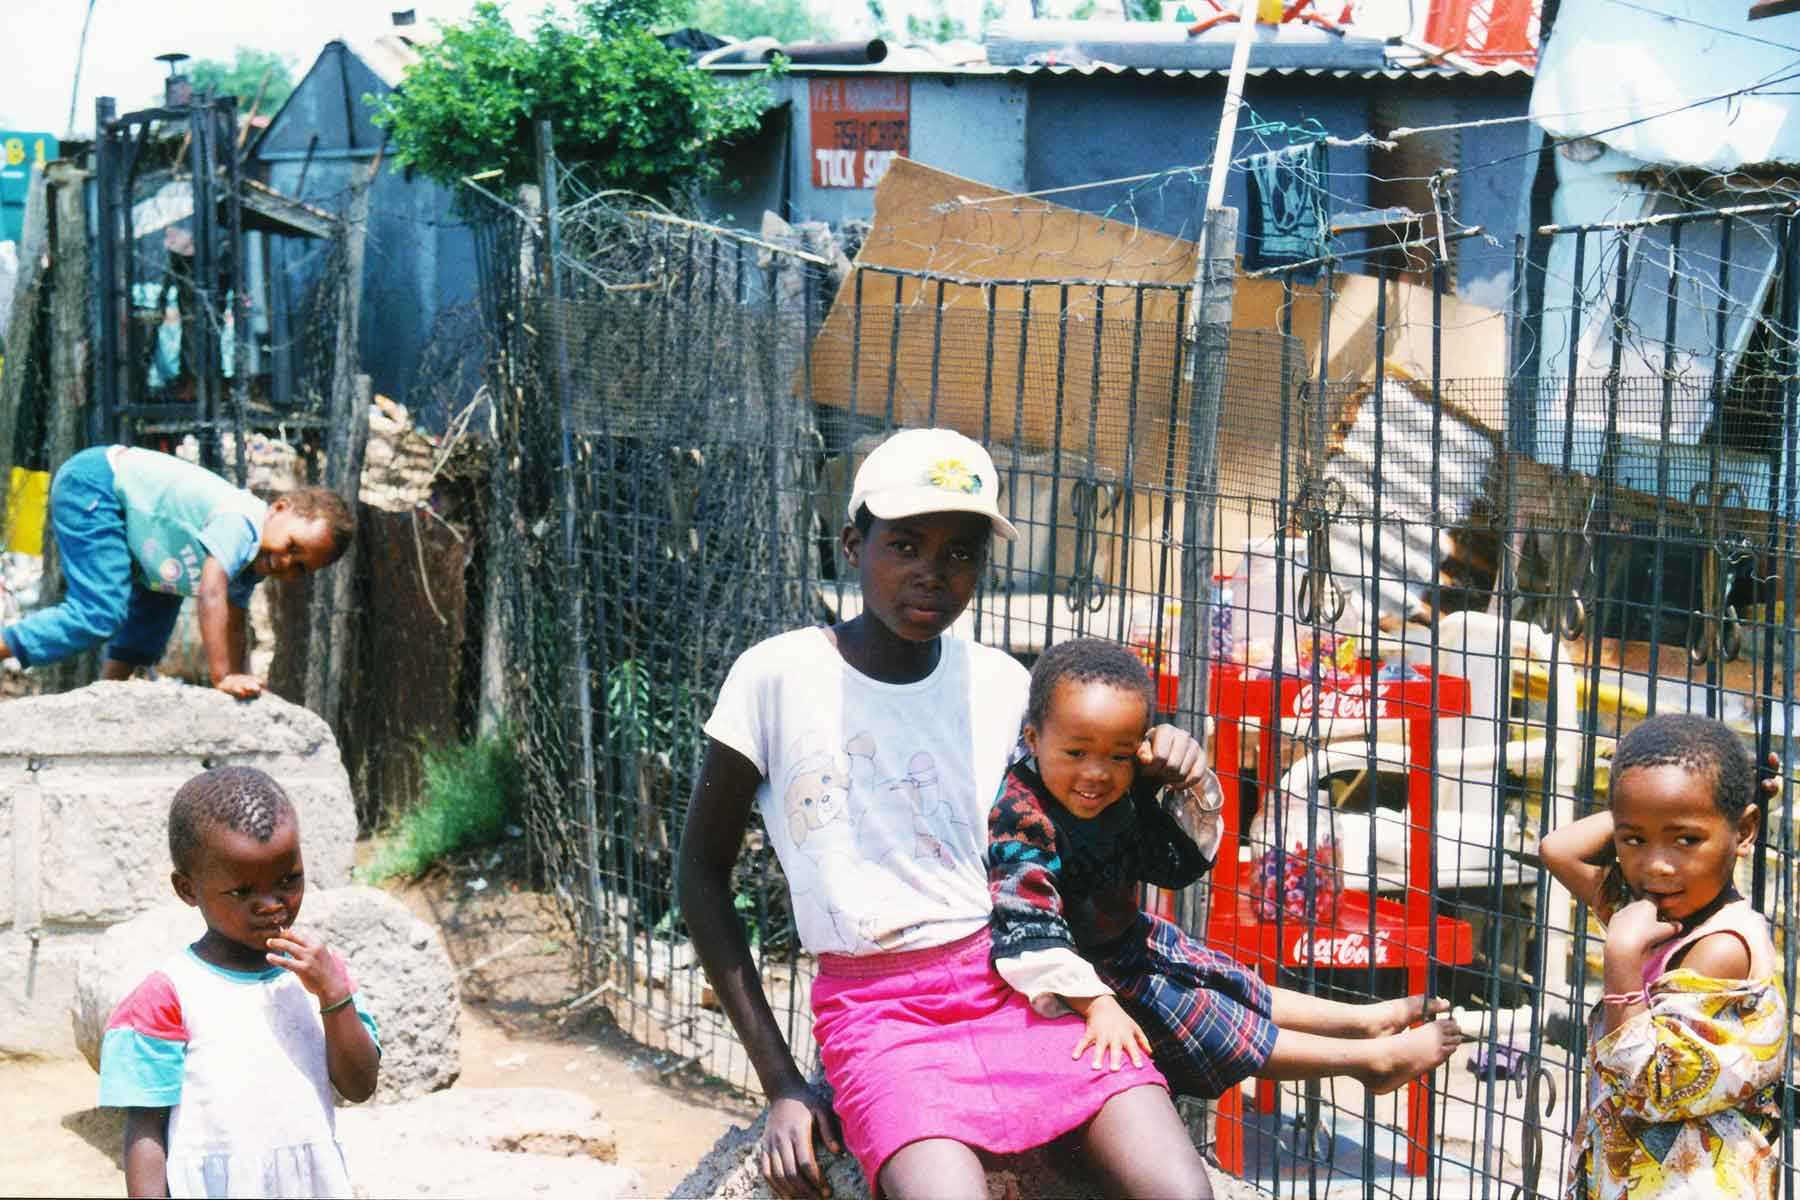 Soweto | South Africa | Steven Andrew Martin | Study Abroad Photo Journal | Dr. Steven A. Martin